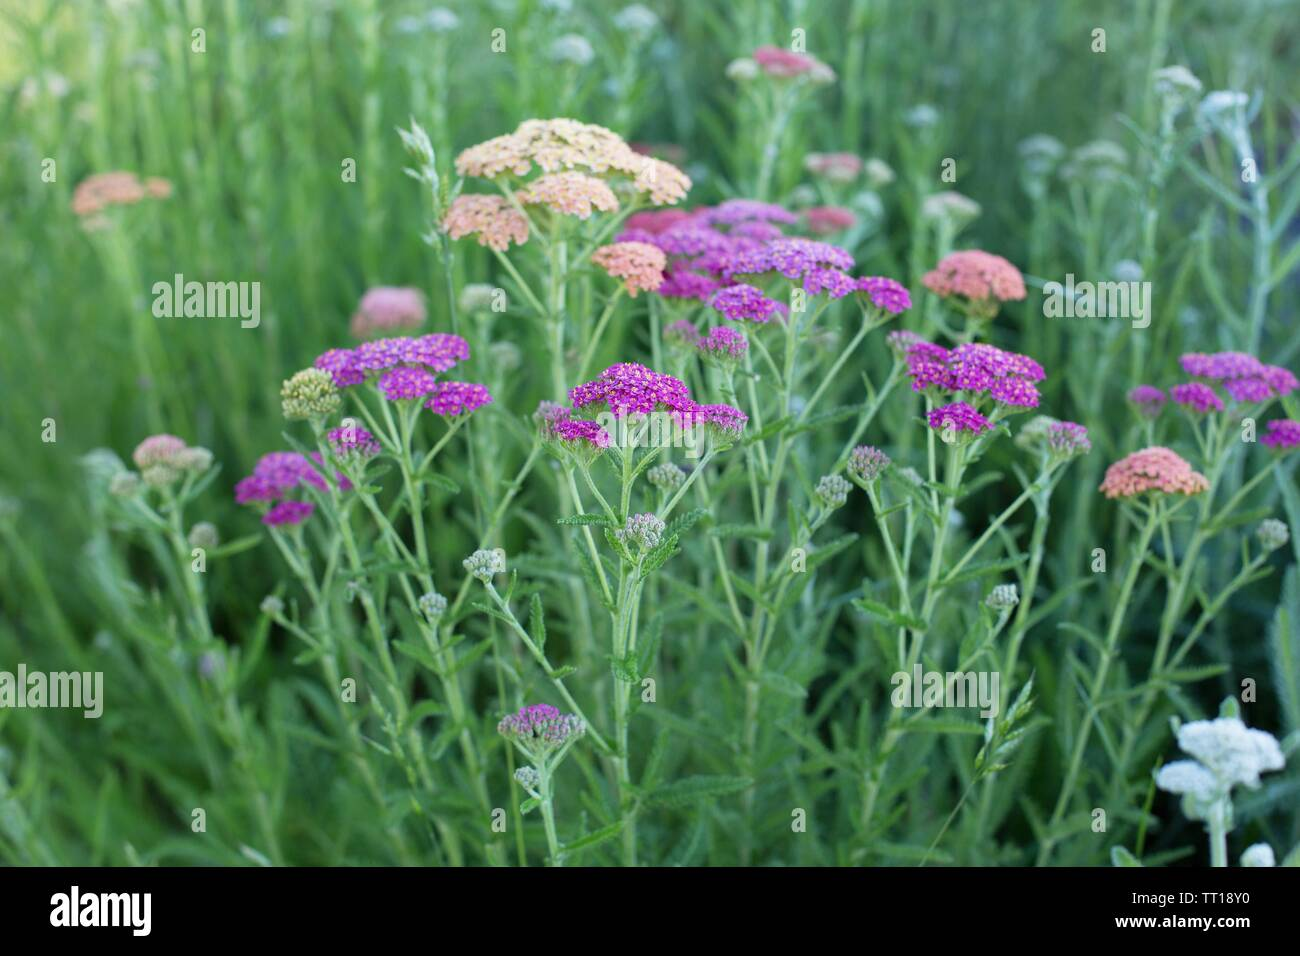 Multi-colored yarrow flower growing in a garden. - Stock Image